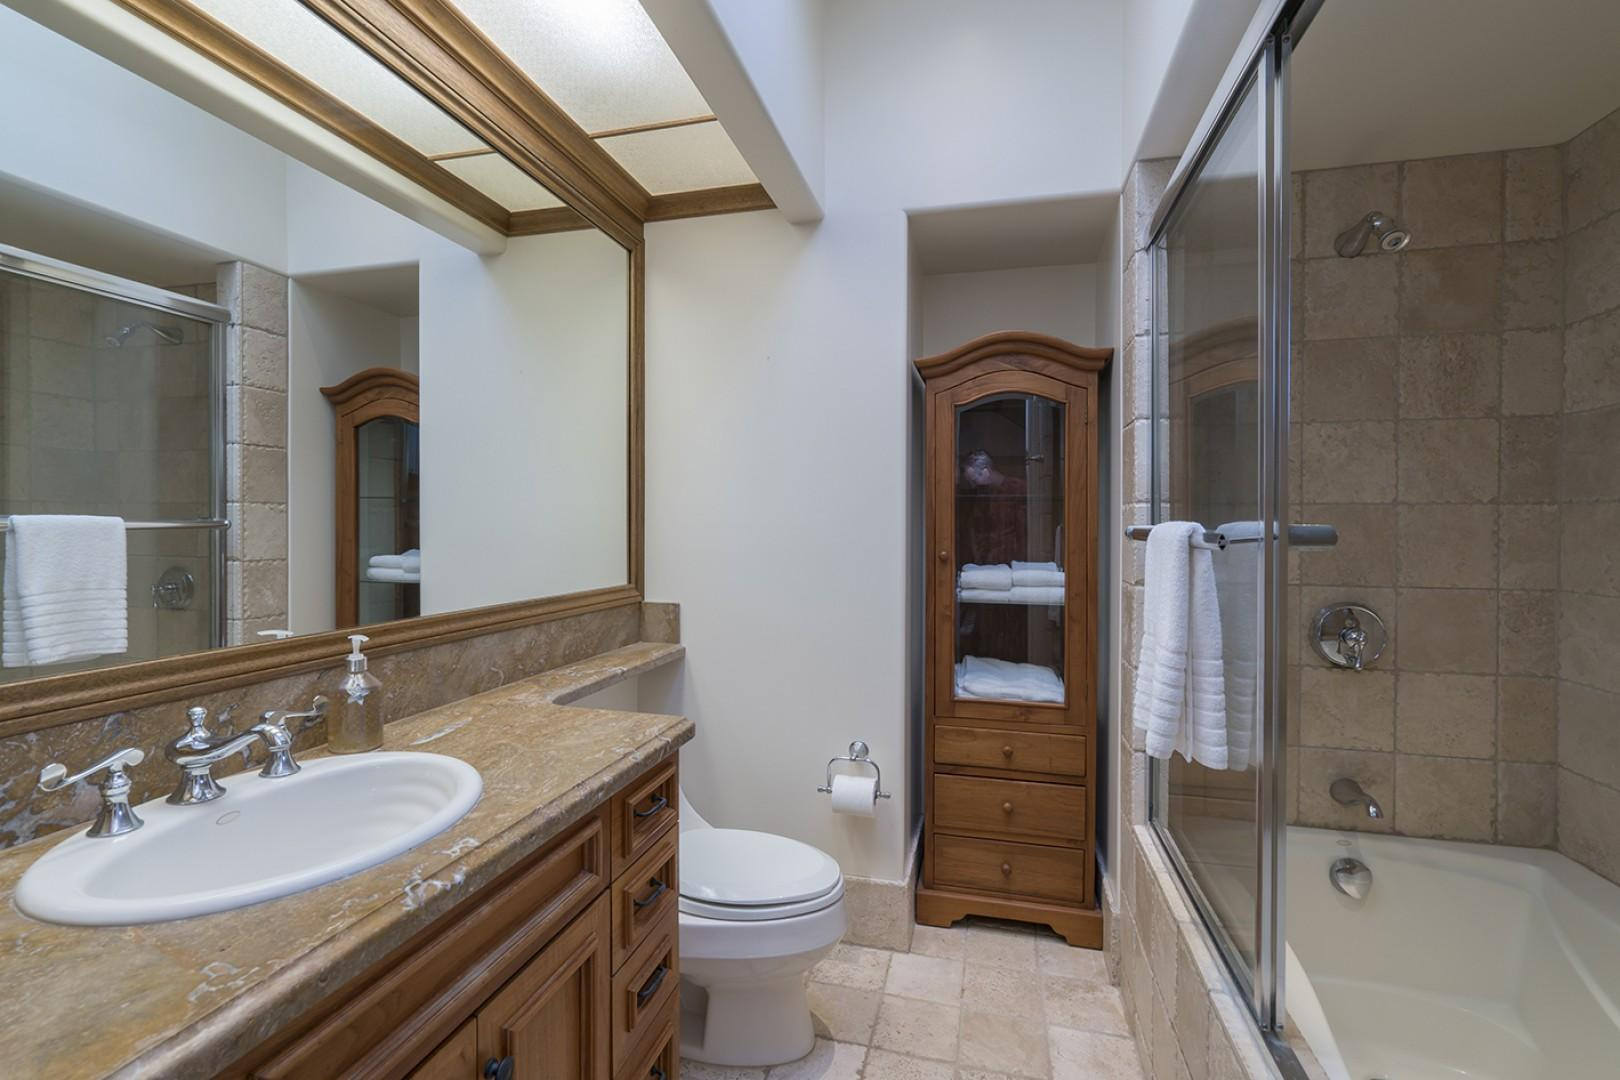 Guest house: Guest Bedroom 3 ensuite bathroom.